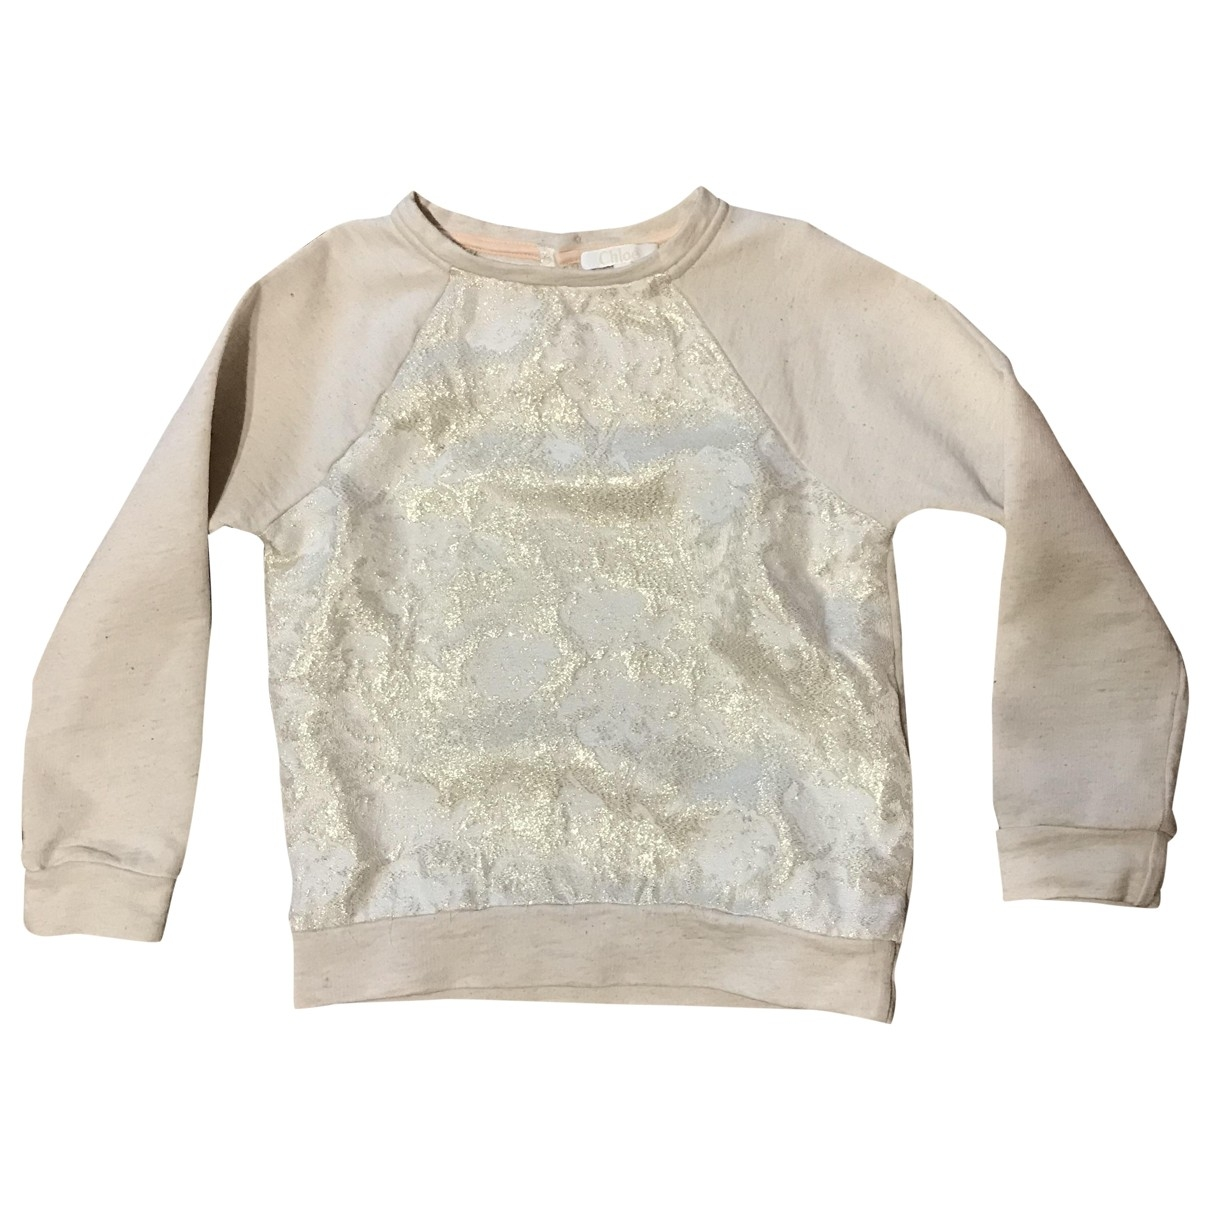 Chloé \N Beige Cotton Knitwear for Kids 6 years - up to 114cm